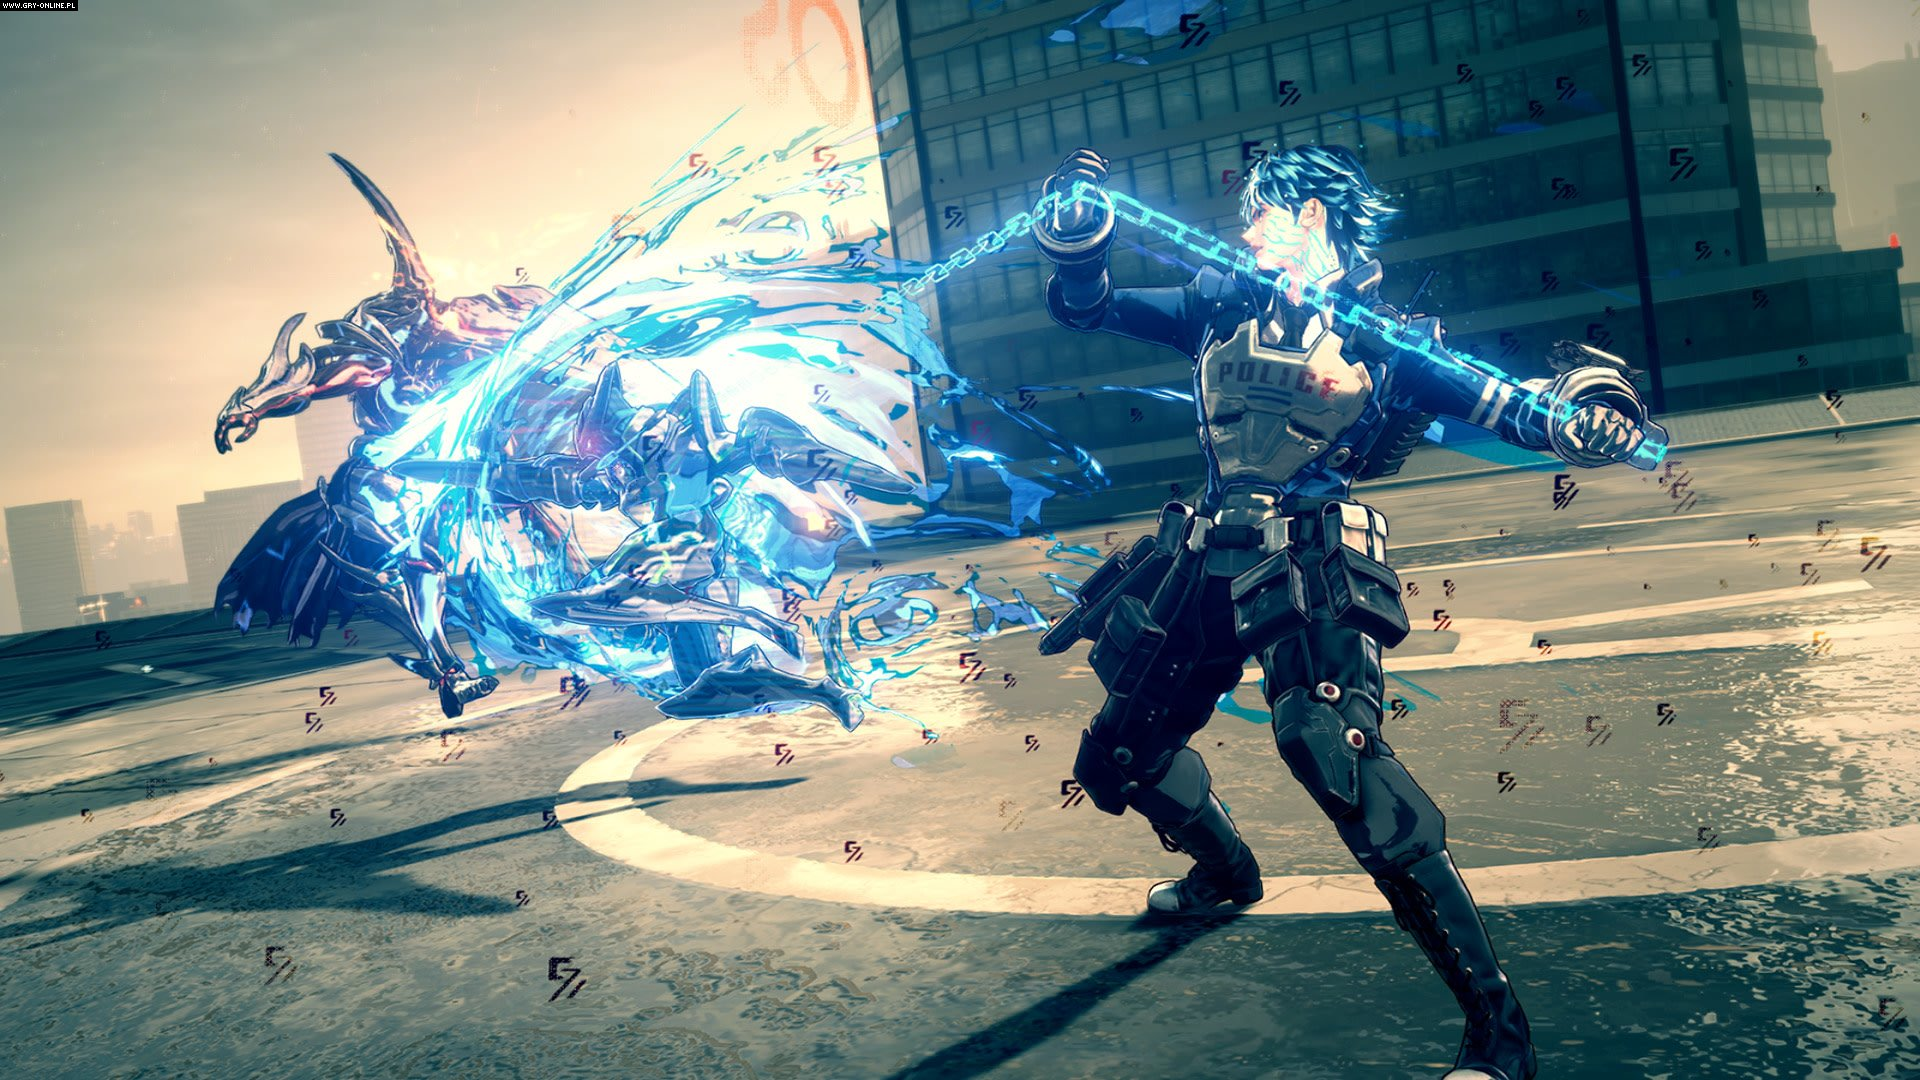 Astral Chain Switch Gry Screen 29/33, PlatinumGames, Nintendo